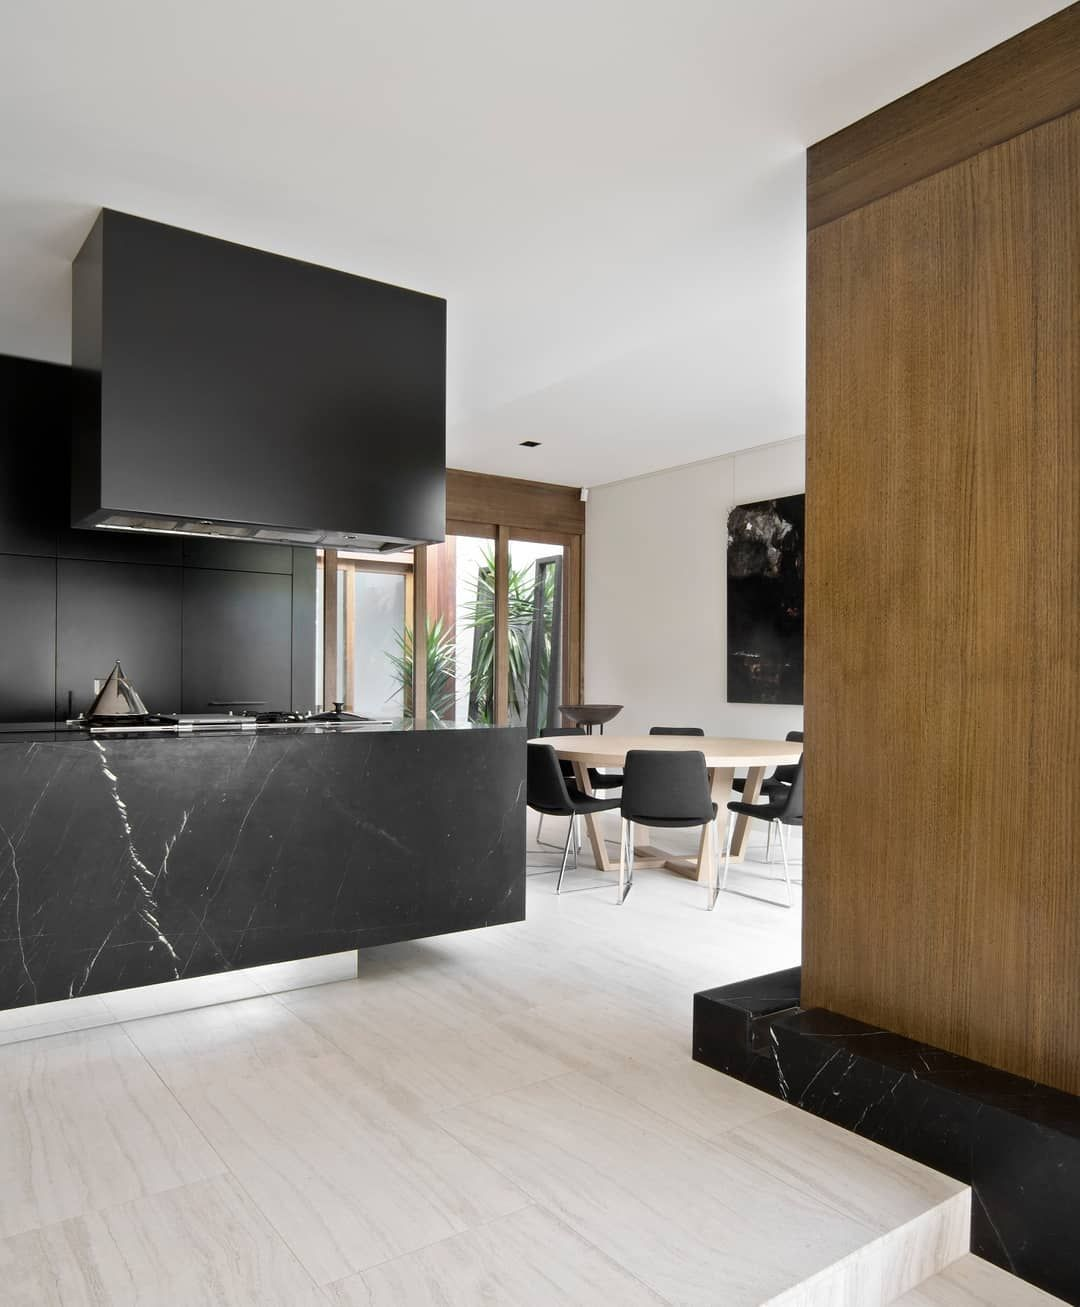 Chamberlain Architects On Instagram A Different View Of Our Black Marble Kitchen Featuring Nero Marquina Marble Kitchen Marble House Design Melbourne House